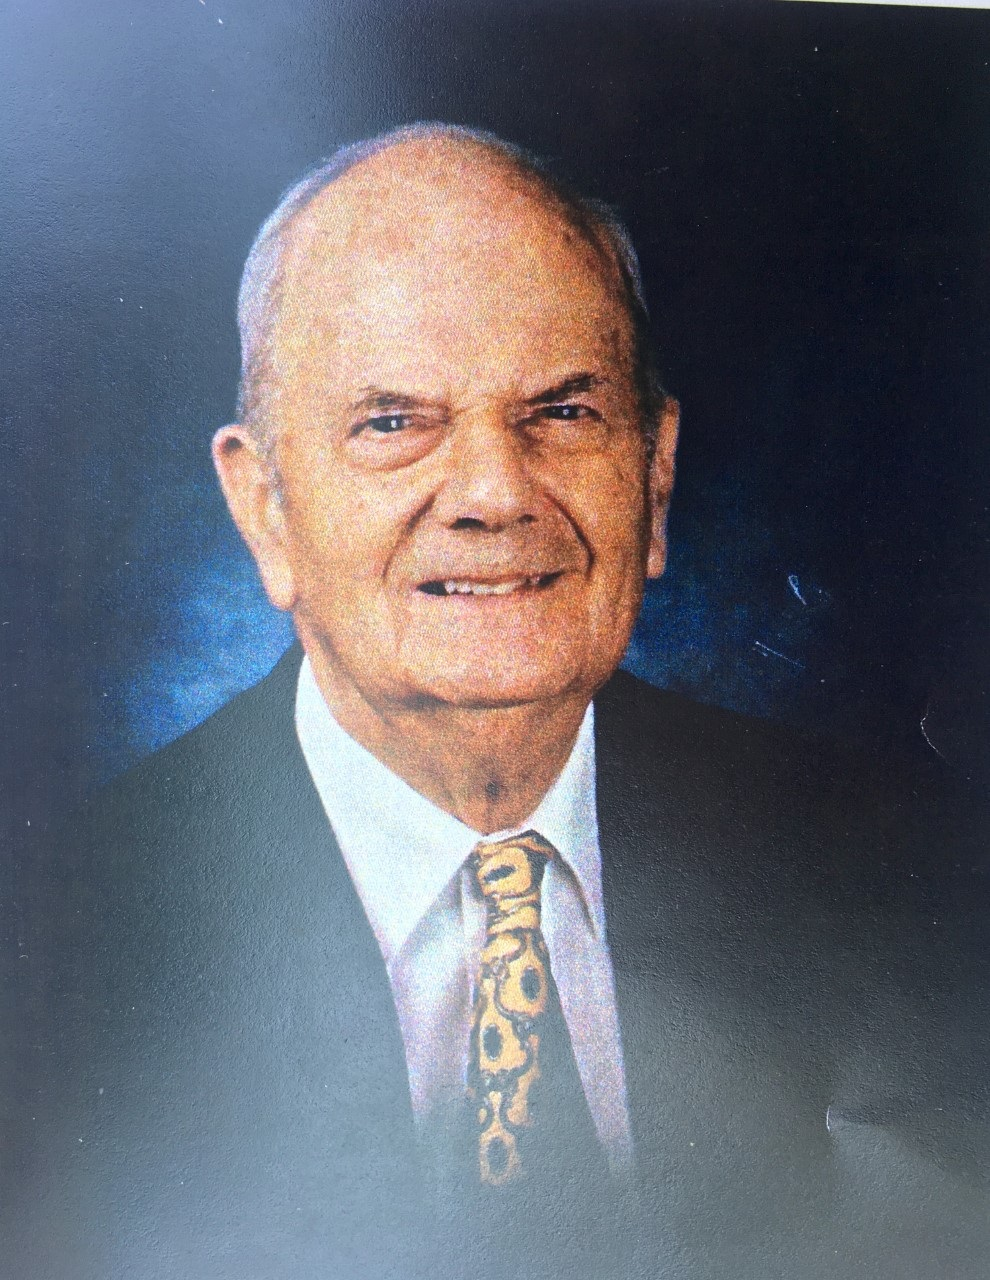 Headshot of Professor Emeritus Norman J. Thrower